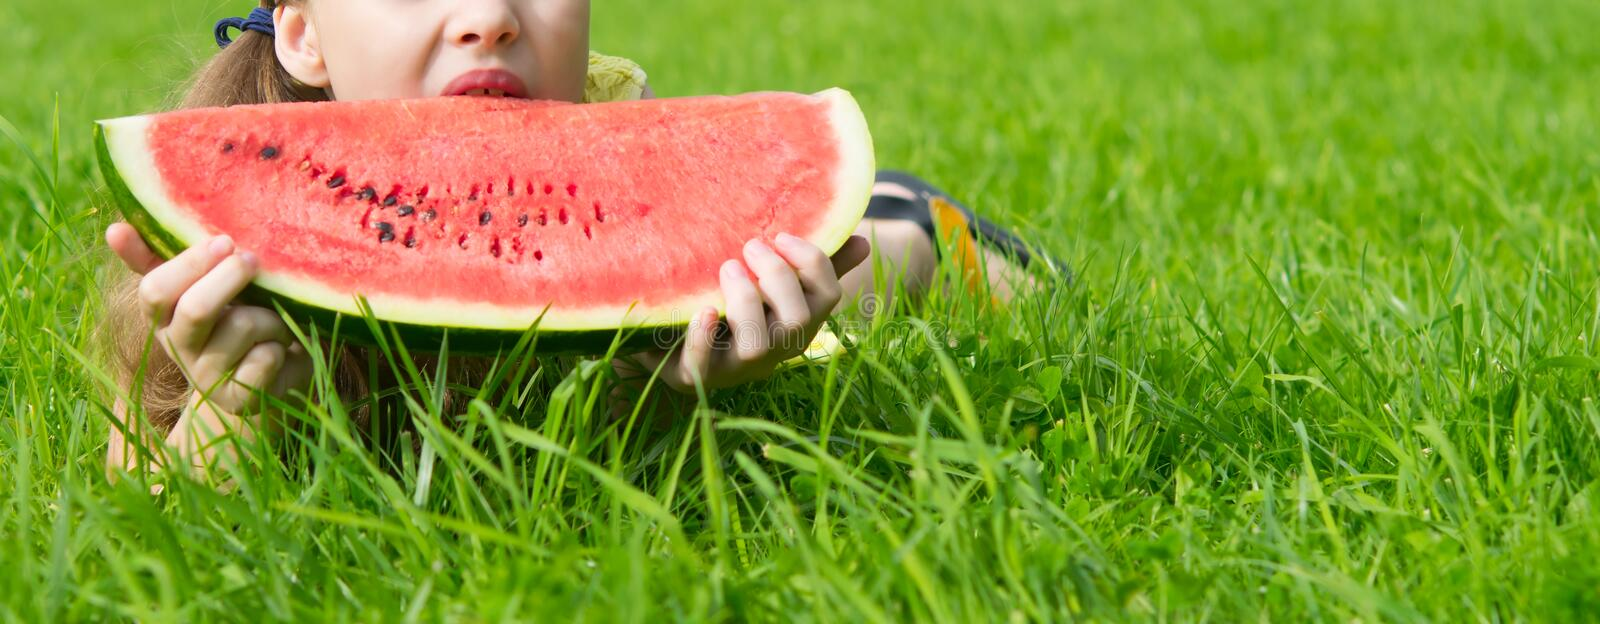 Girl lying on the lawn. and holding a large slice of watermelon on a green background. close up stock photo